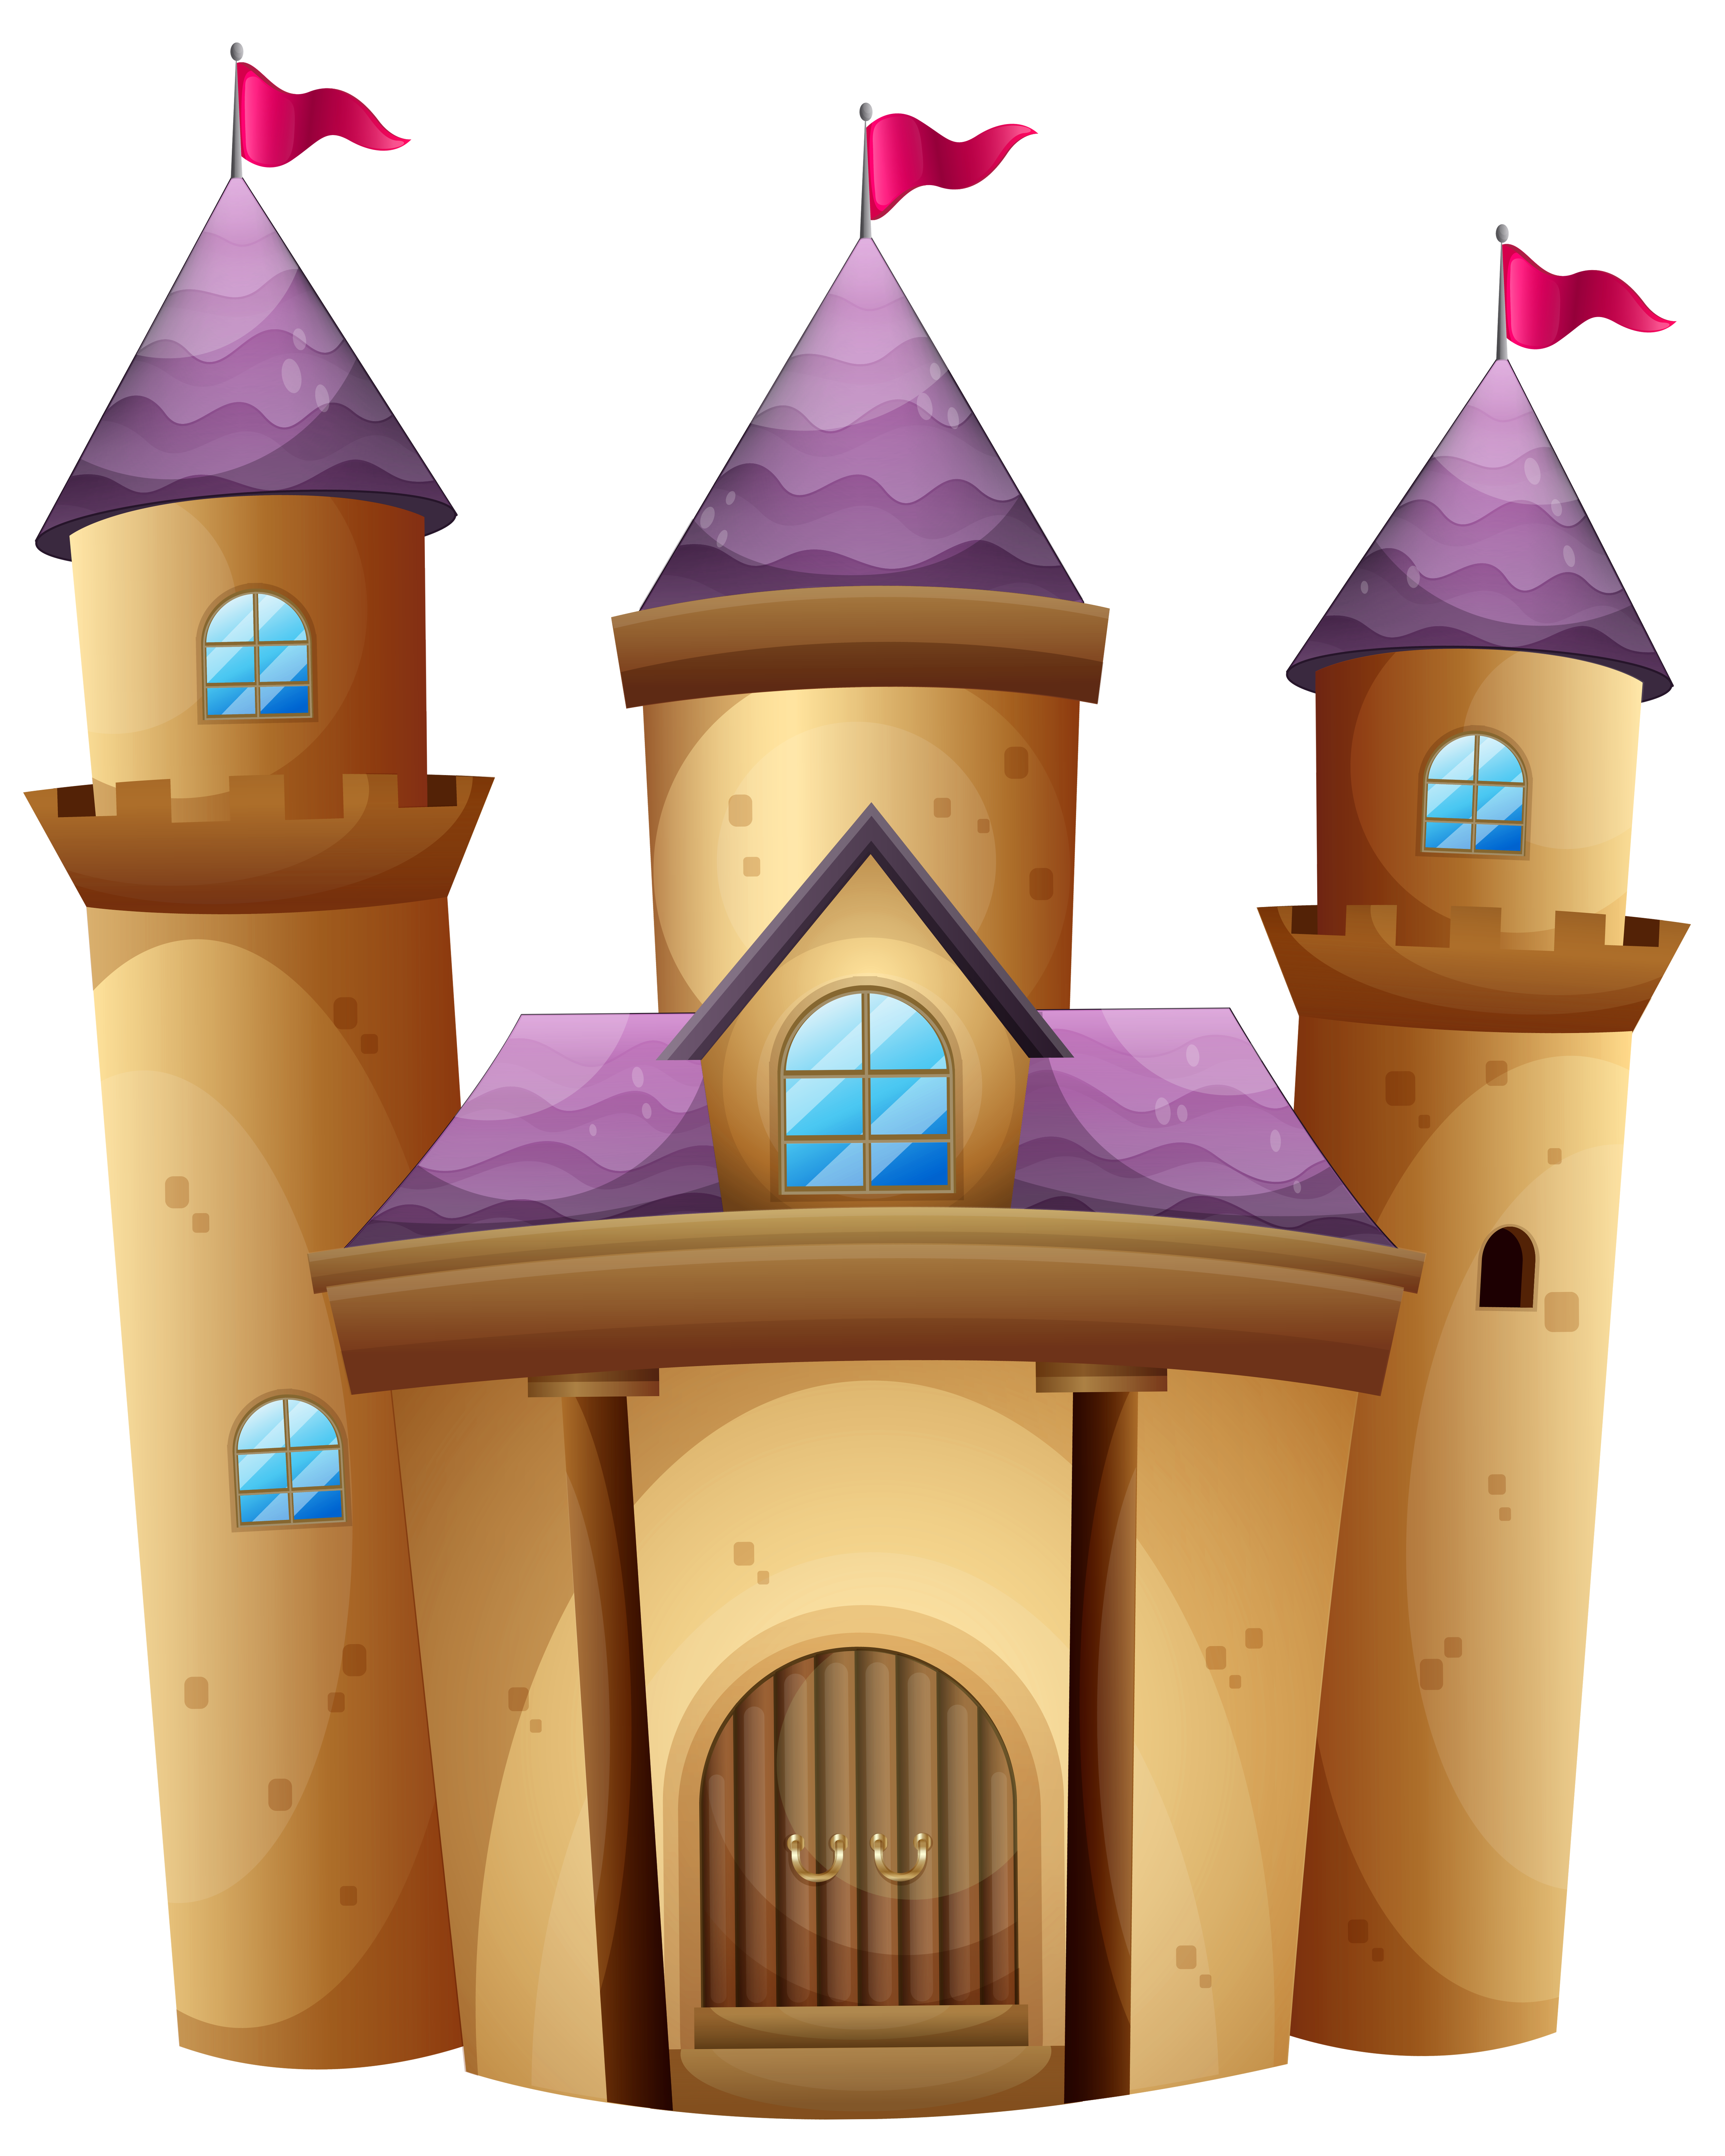 Castle clip art png. Image gallery yopriceville high